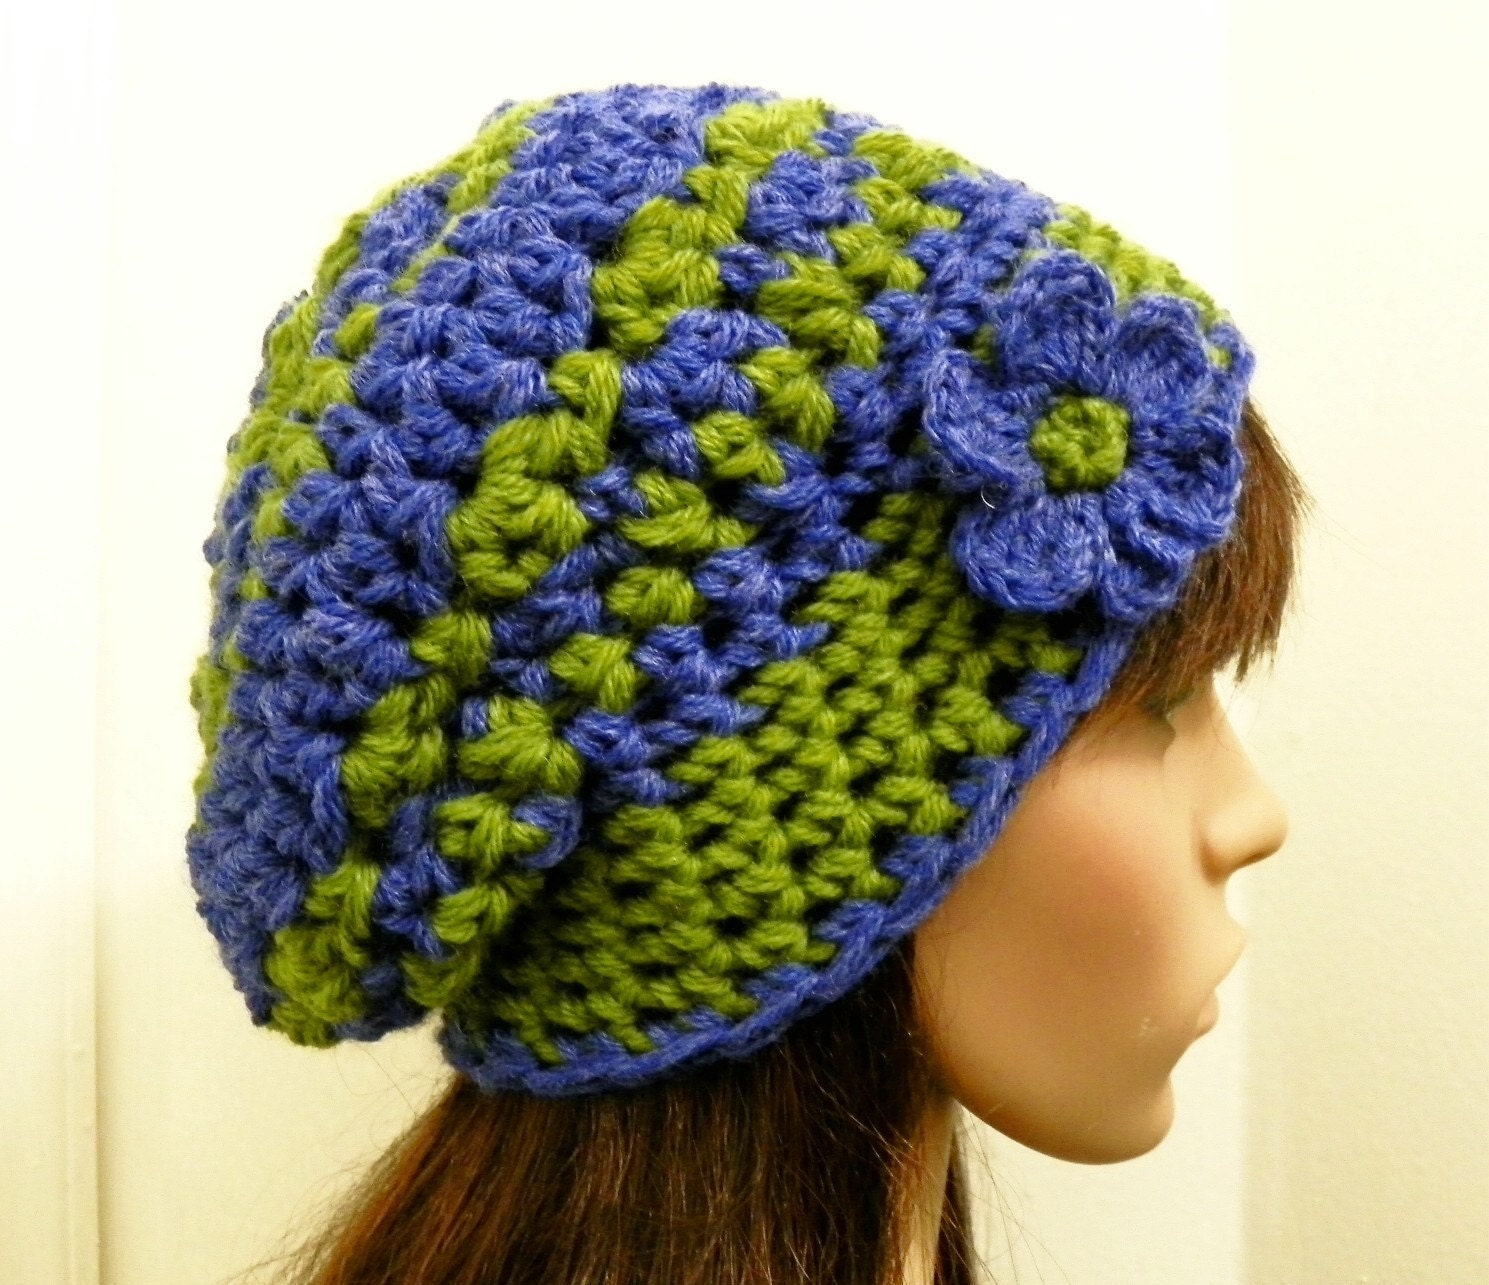 Wool Blend Slouchy Beanie in Blue and Green - Hand Crocheted